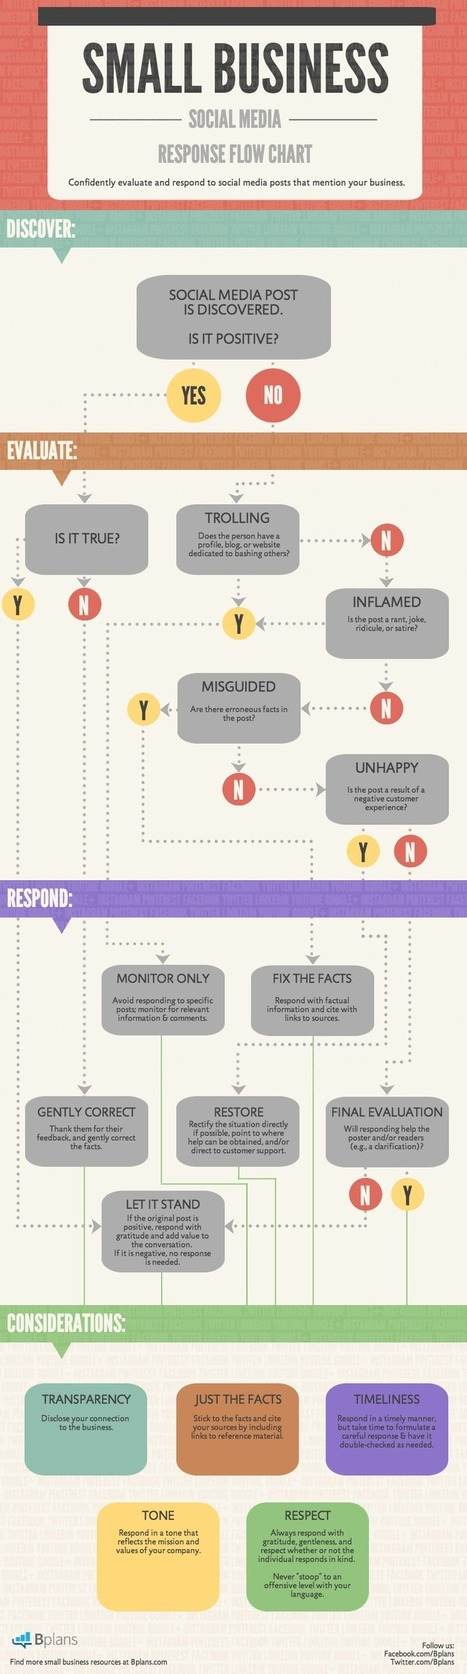 Social Media Response Flow Chart for Small Businesses - Decision tree INFOGRAPHIC | #WebMarketing Su Misura | Scoop.it